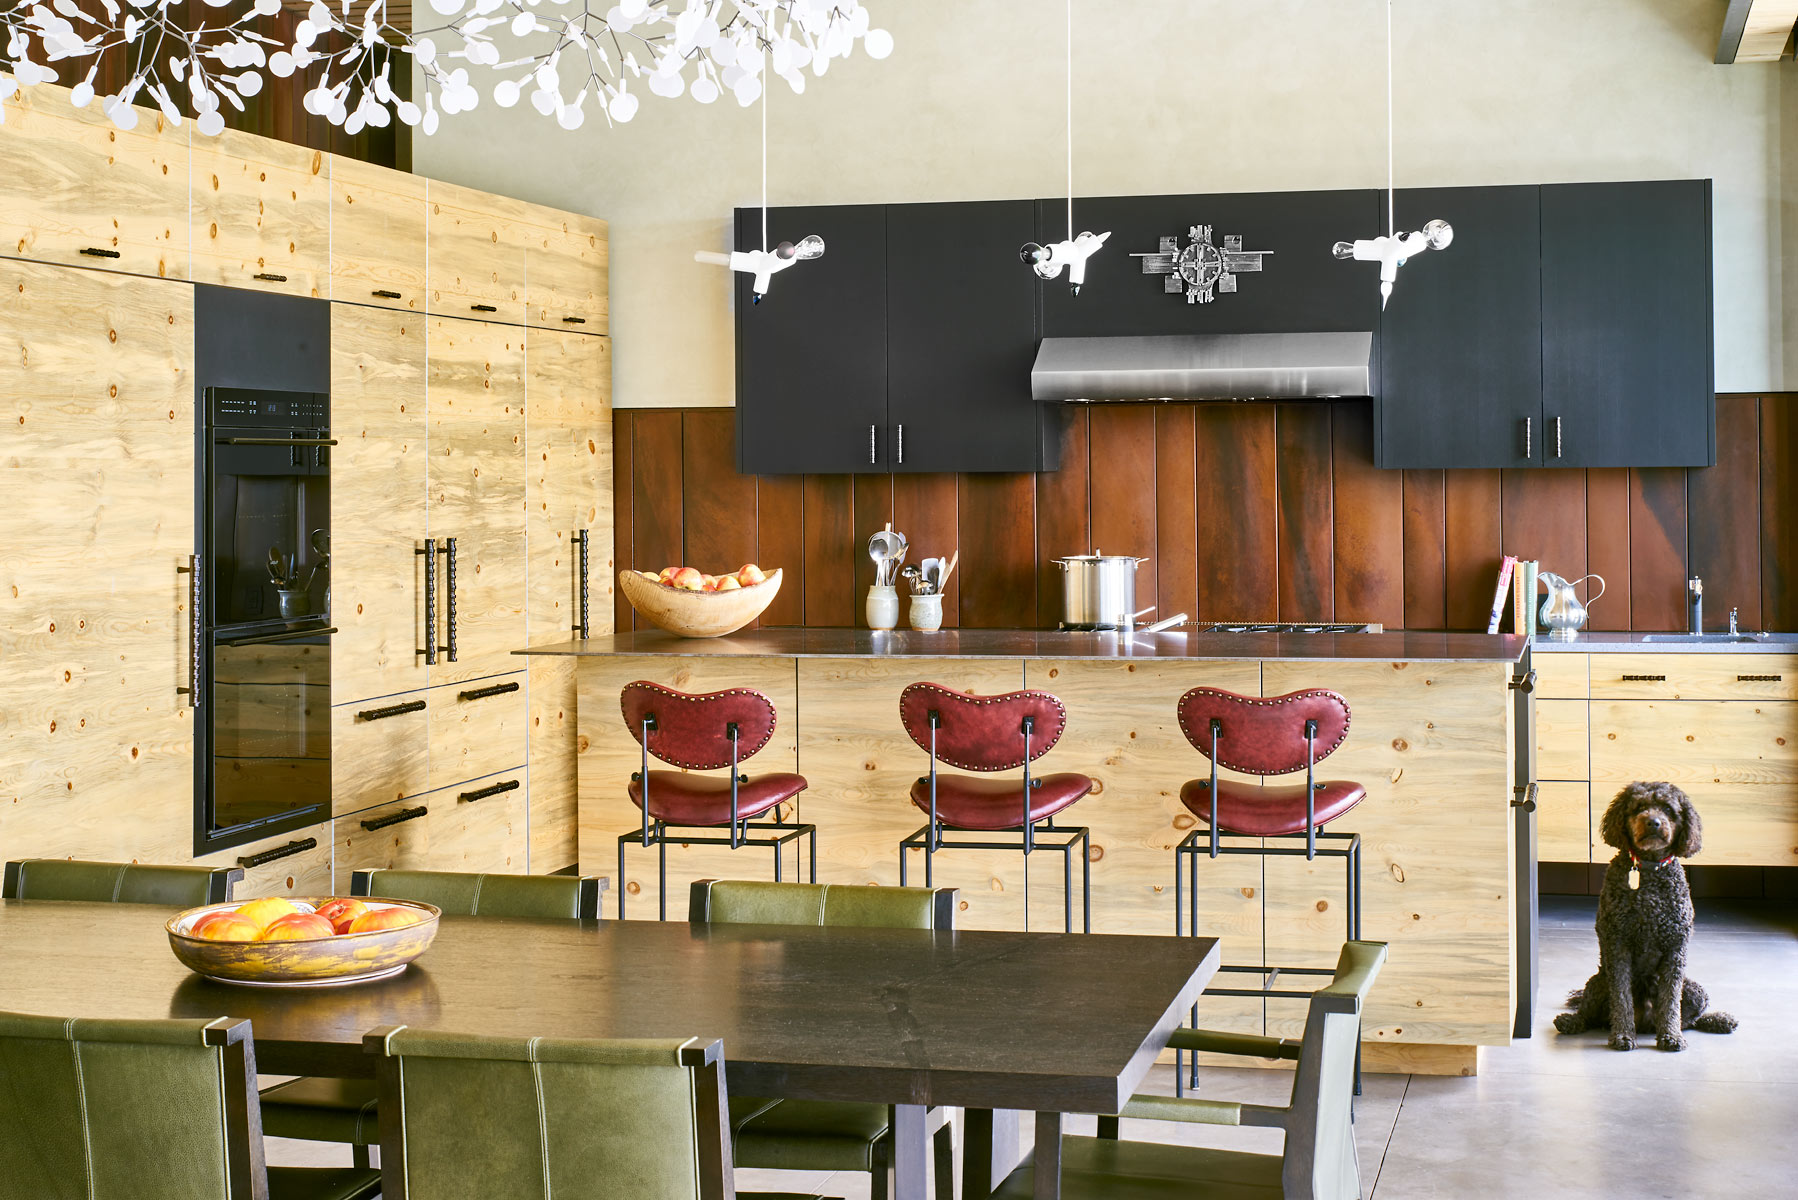 Luxe-Soffer-8-24-16-Kitchen-W-Dog-Web